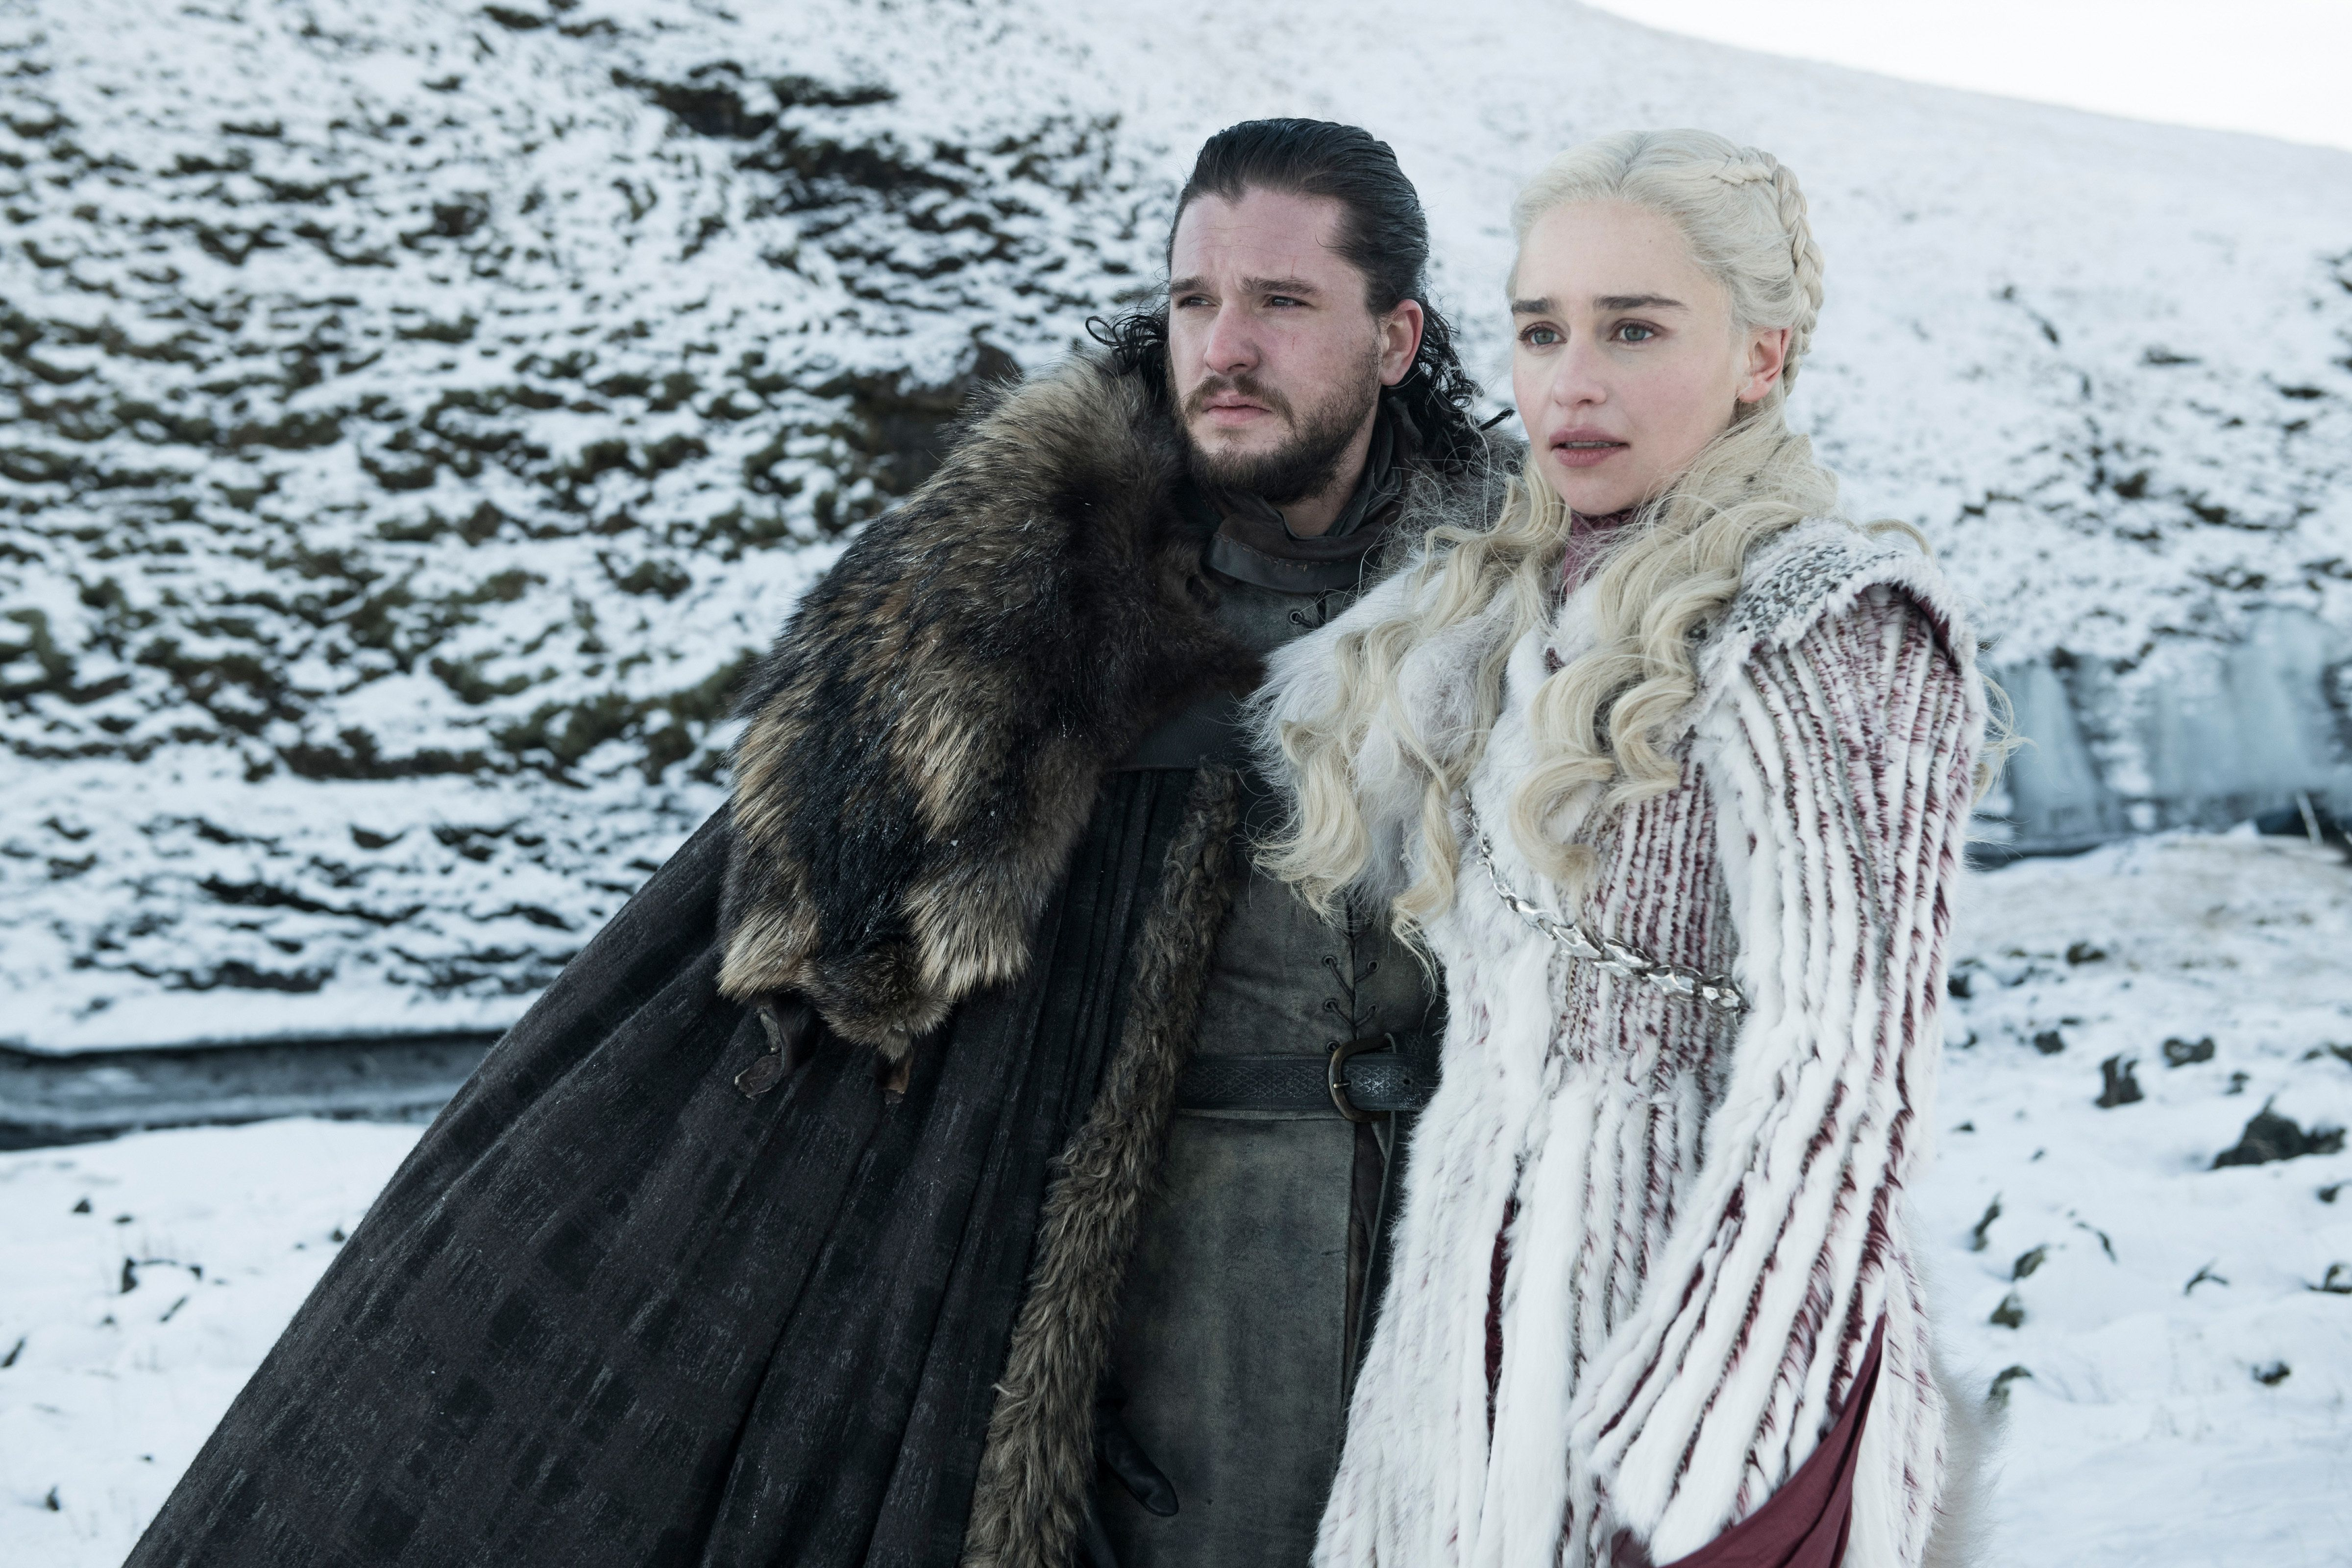 'Game Of Thrones' Season 8 Photos Are Dark And Full Of